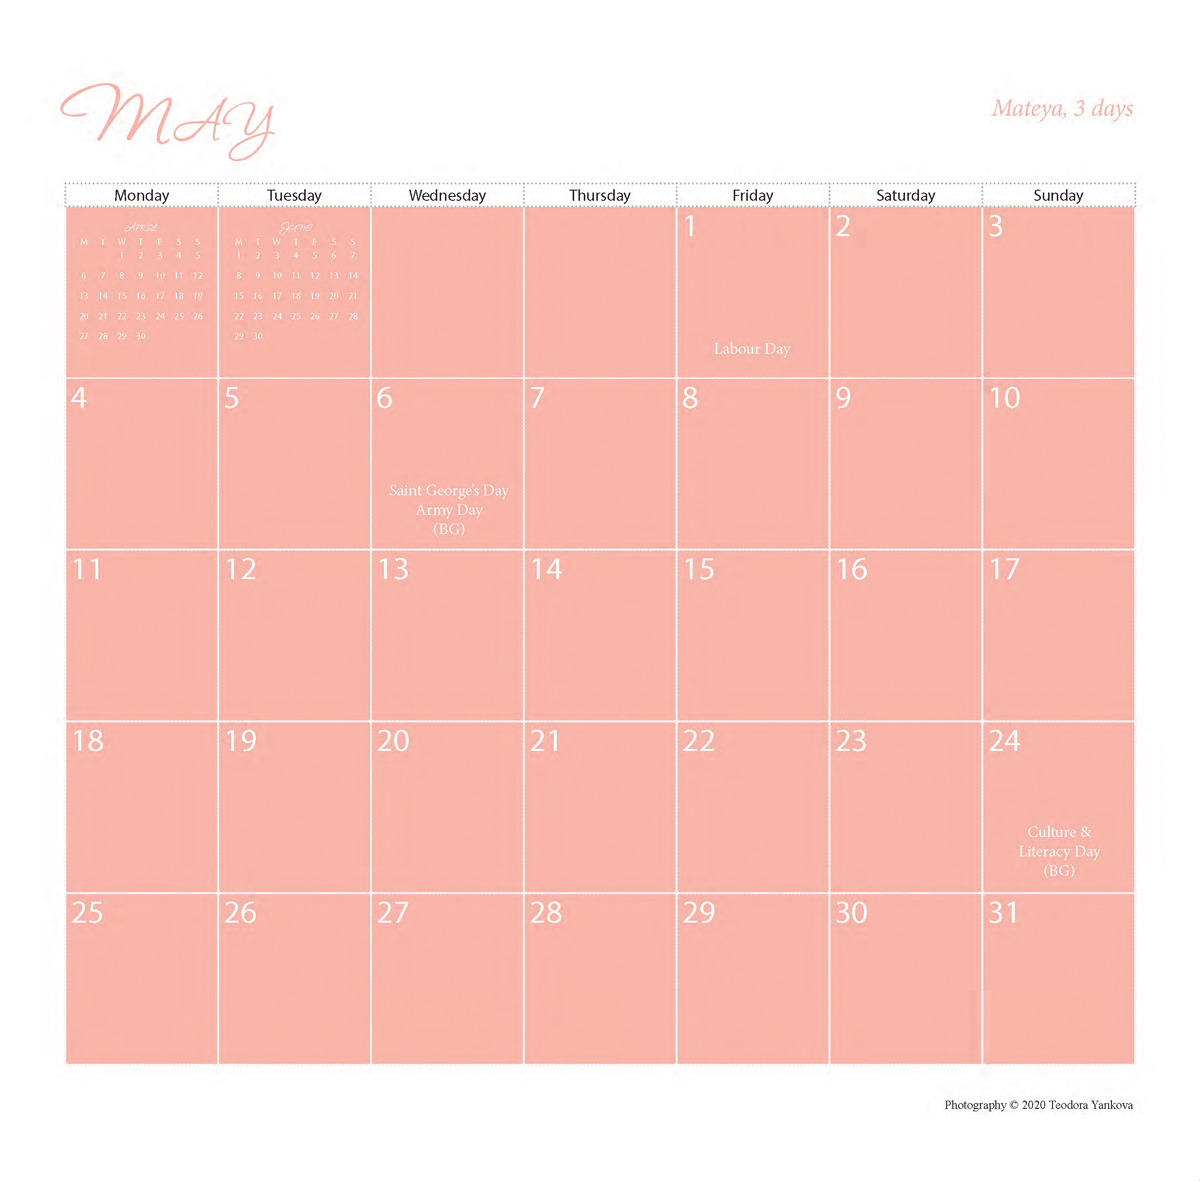 Pearl-in-the-Shell-Calendar-2020 (13)